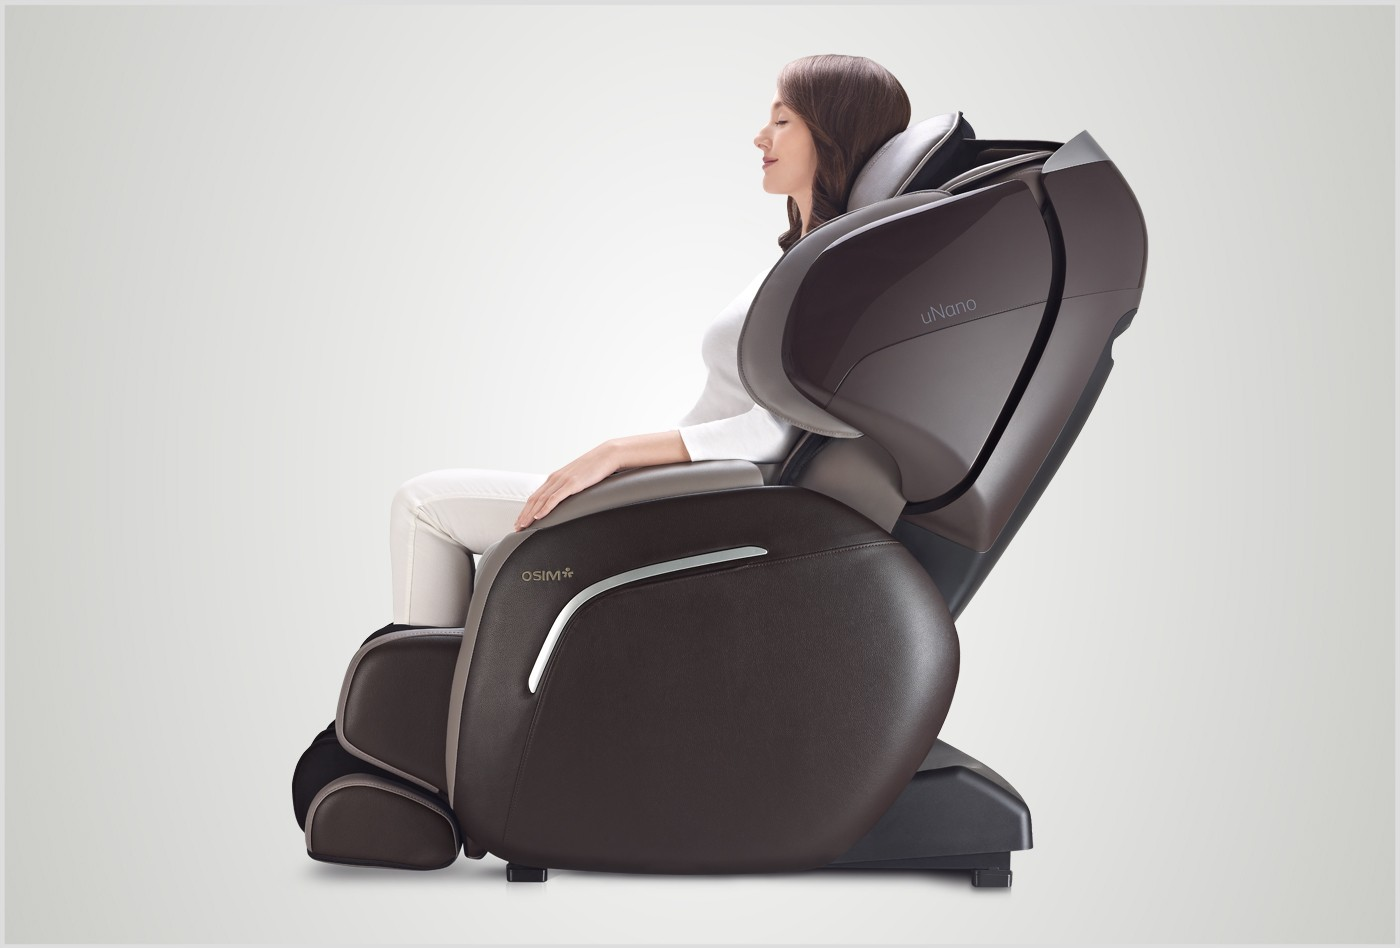 images struktura awesome inspirational price for massage osim negotiable ogawa best chair old